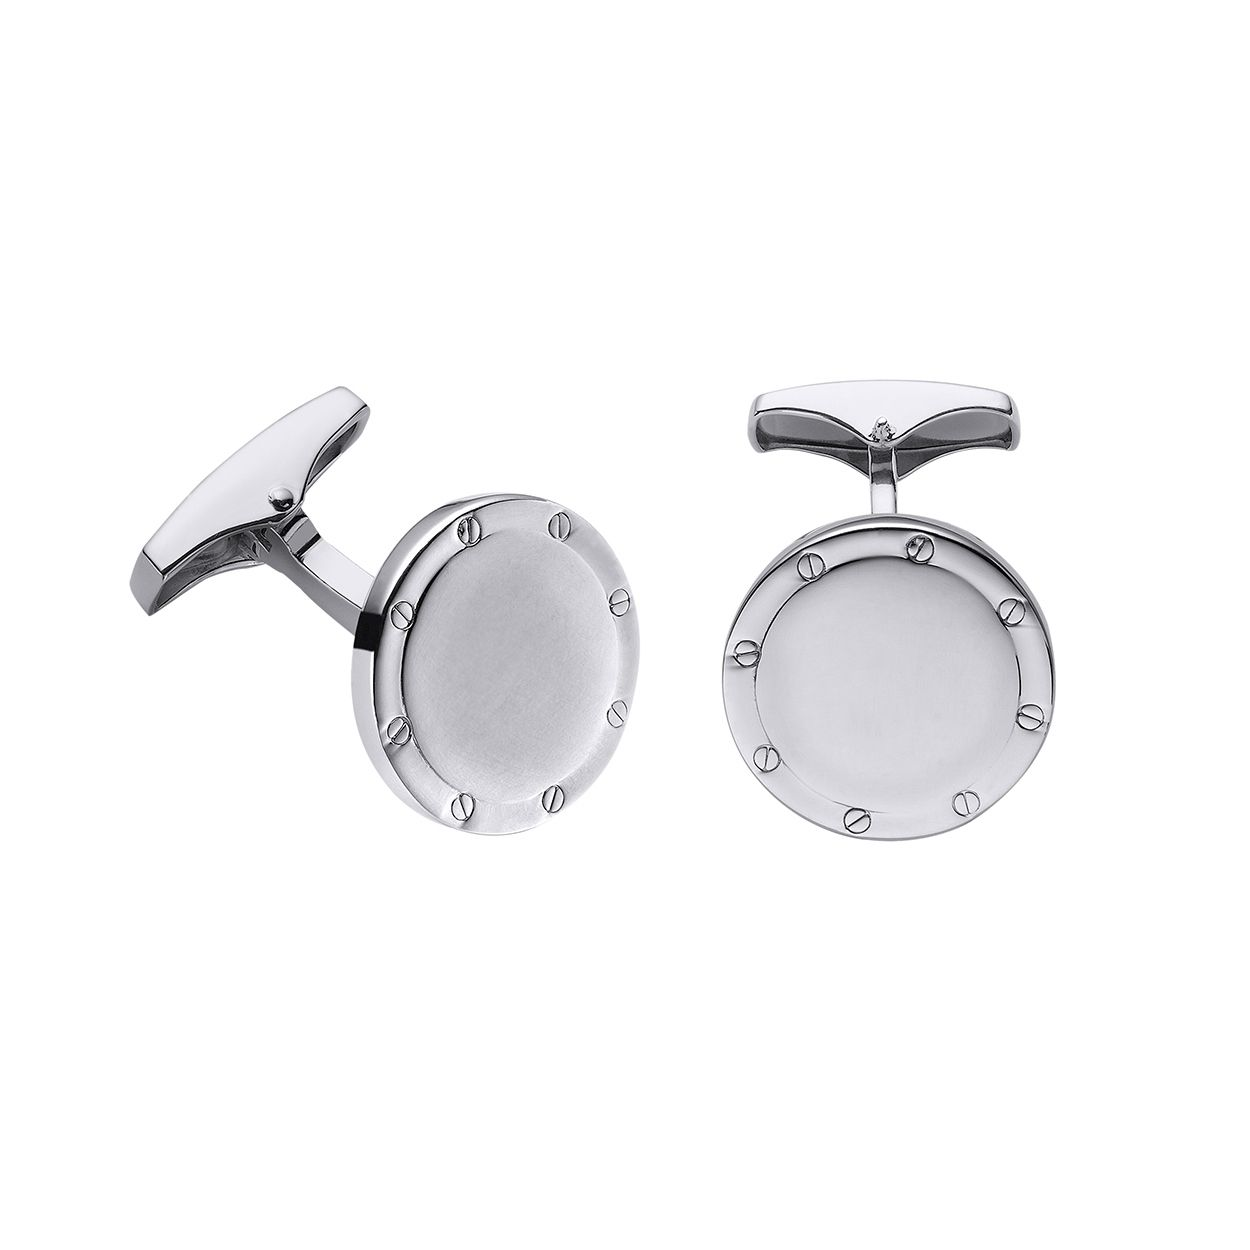 GEMELOS OVAL PLATA DURAN EXQUSE 74121